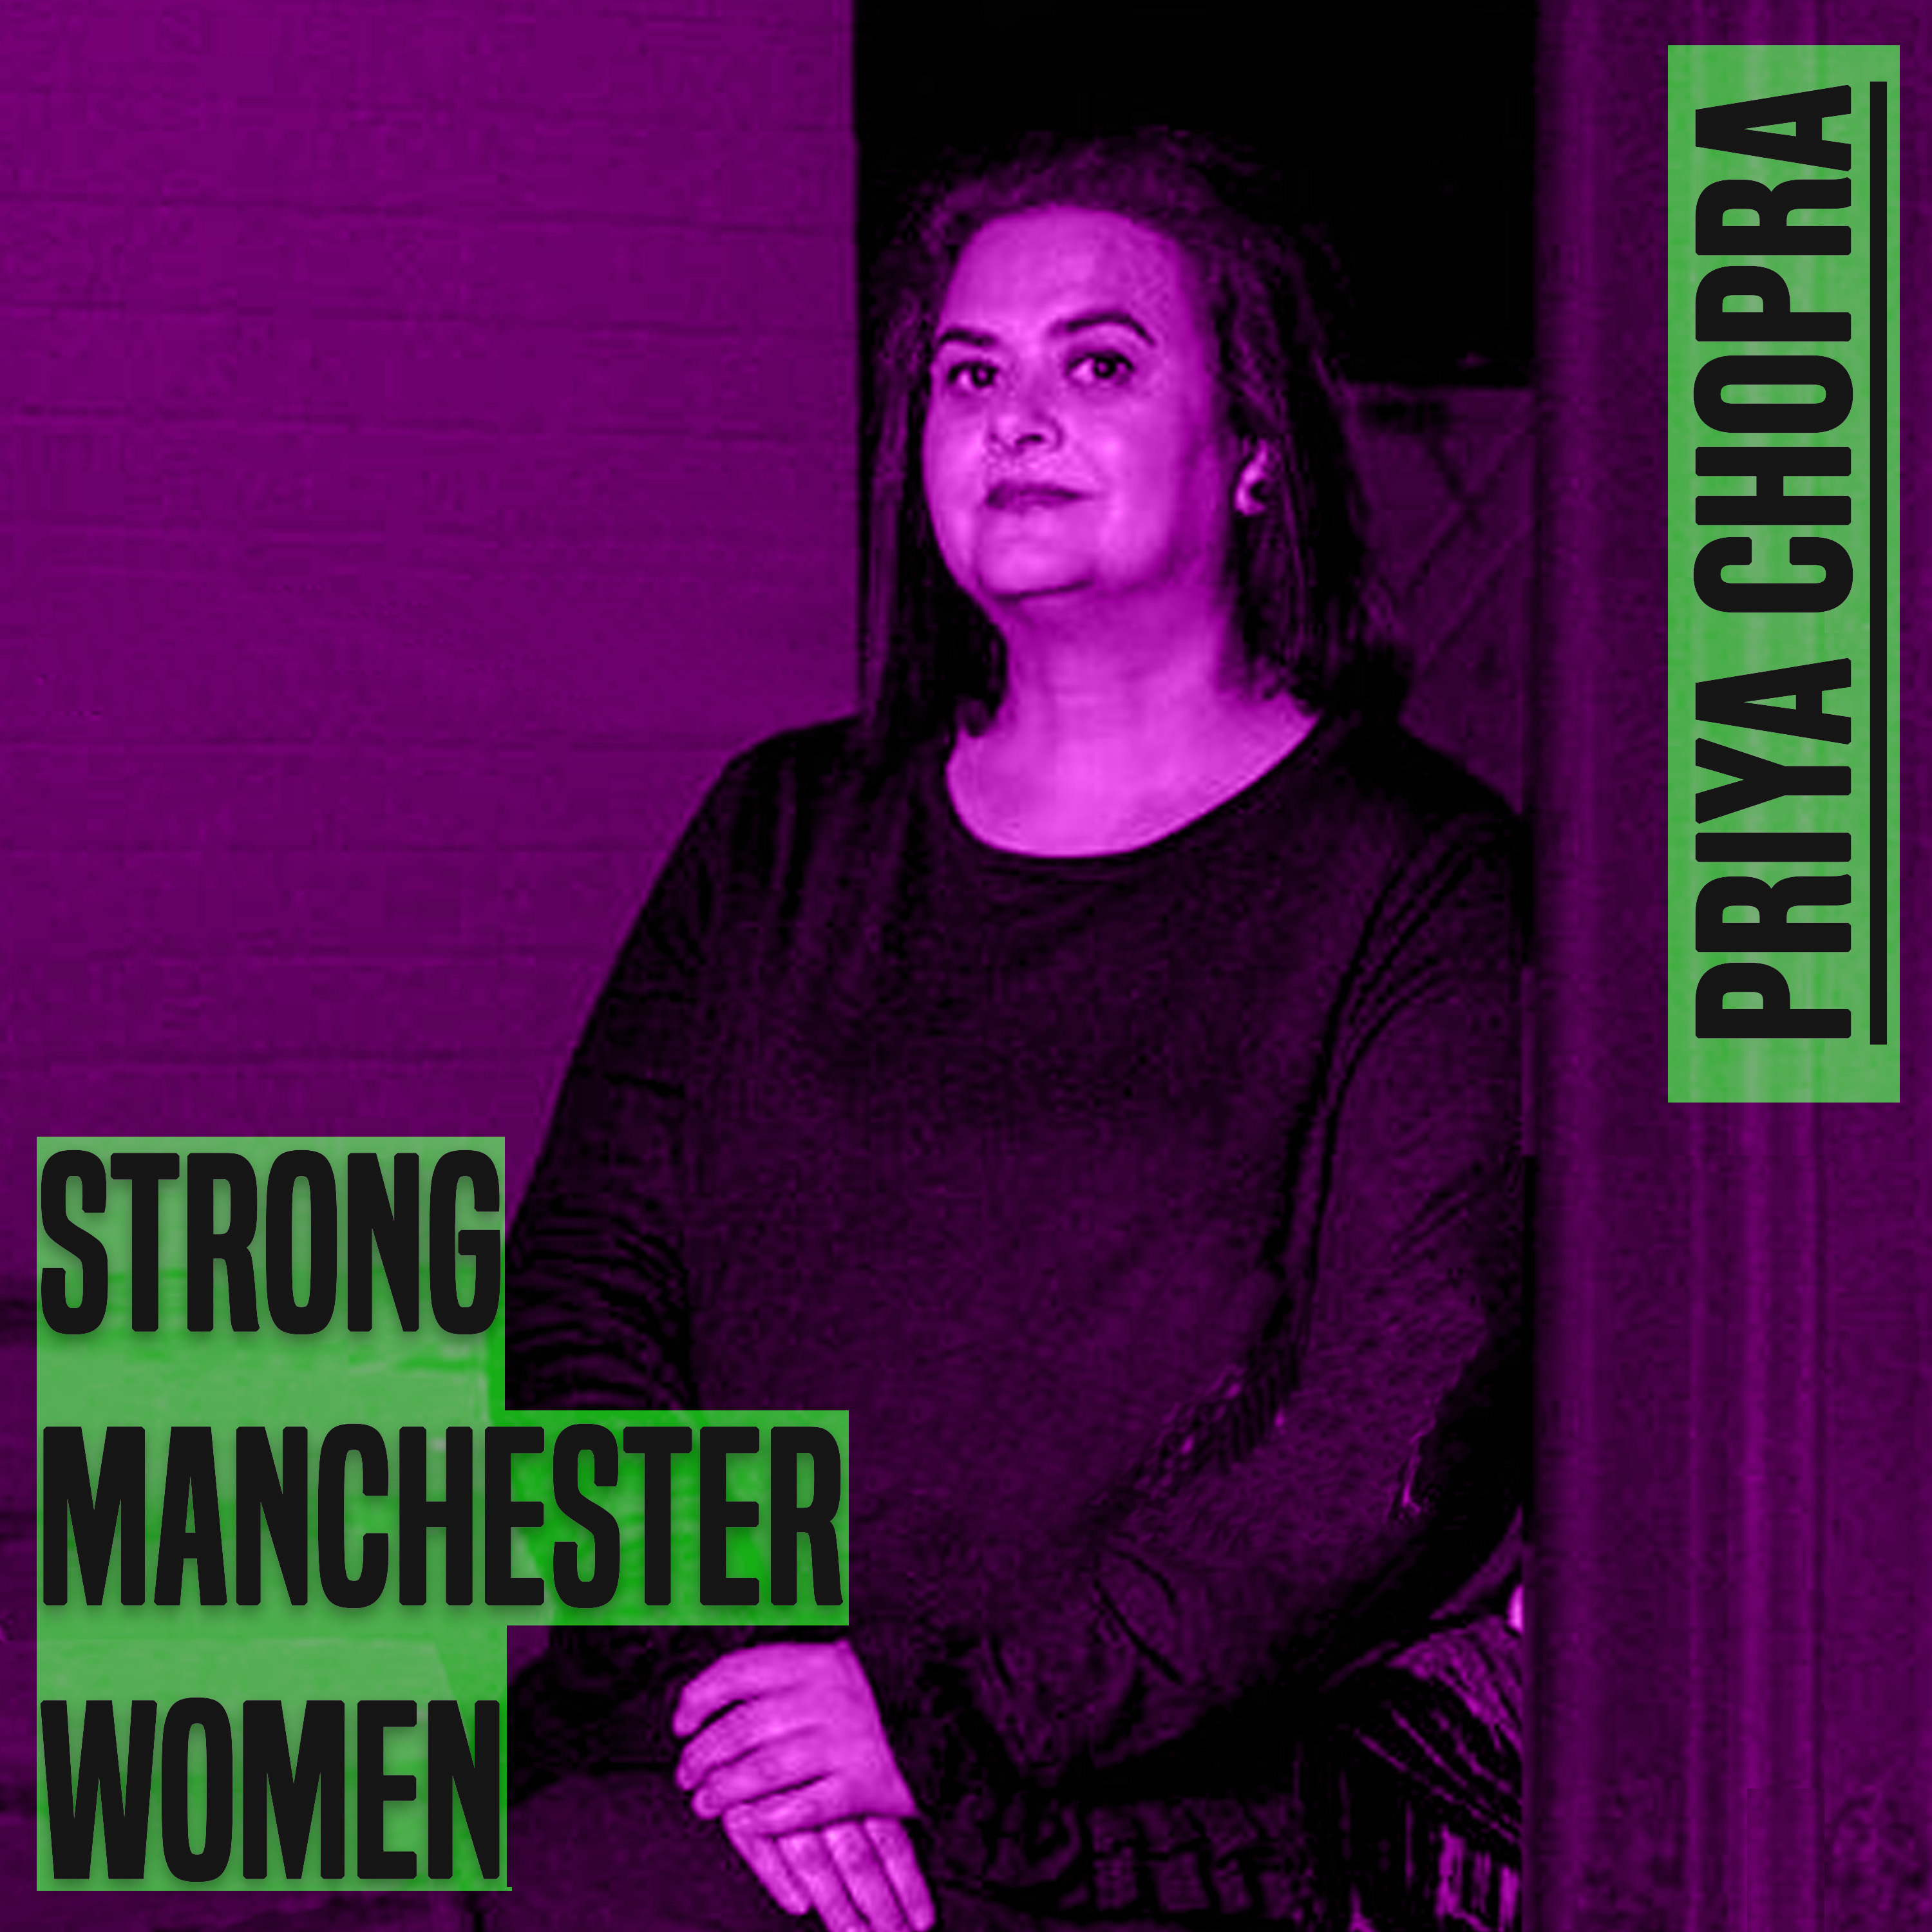 A woman with dark hair sits on a chair and she is wearing a dark top. The photo crops above her knees. The picture has a purple hue to it. On the leff of the picture are the words 'strong manchester women' on the right 'Priya Chopra - both in capital and grey colour letters